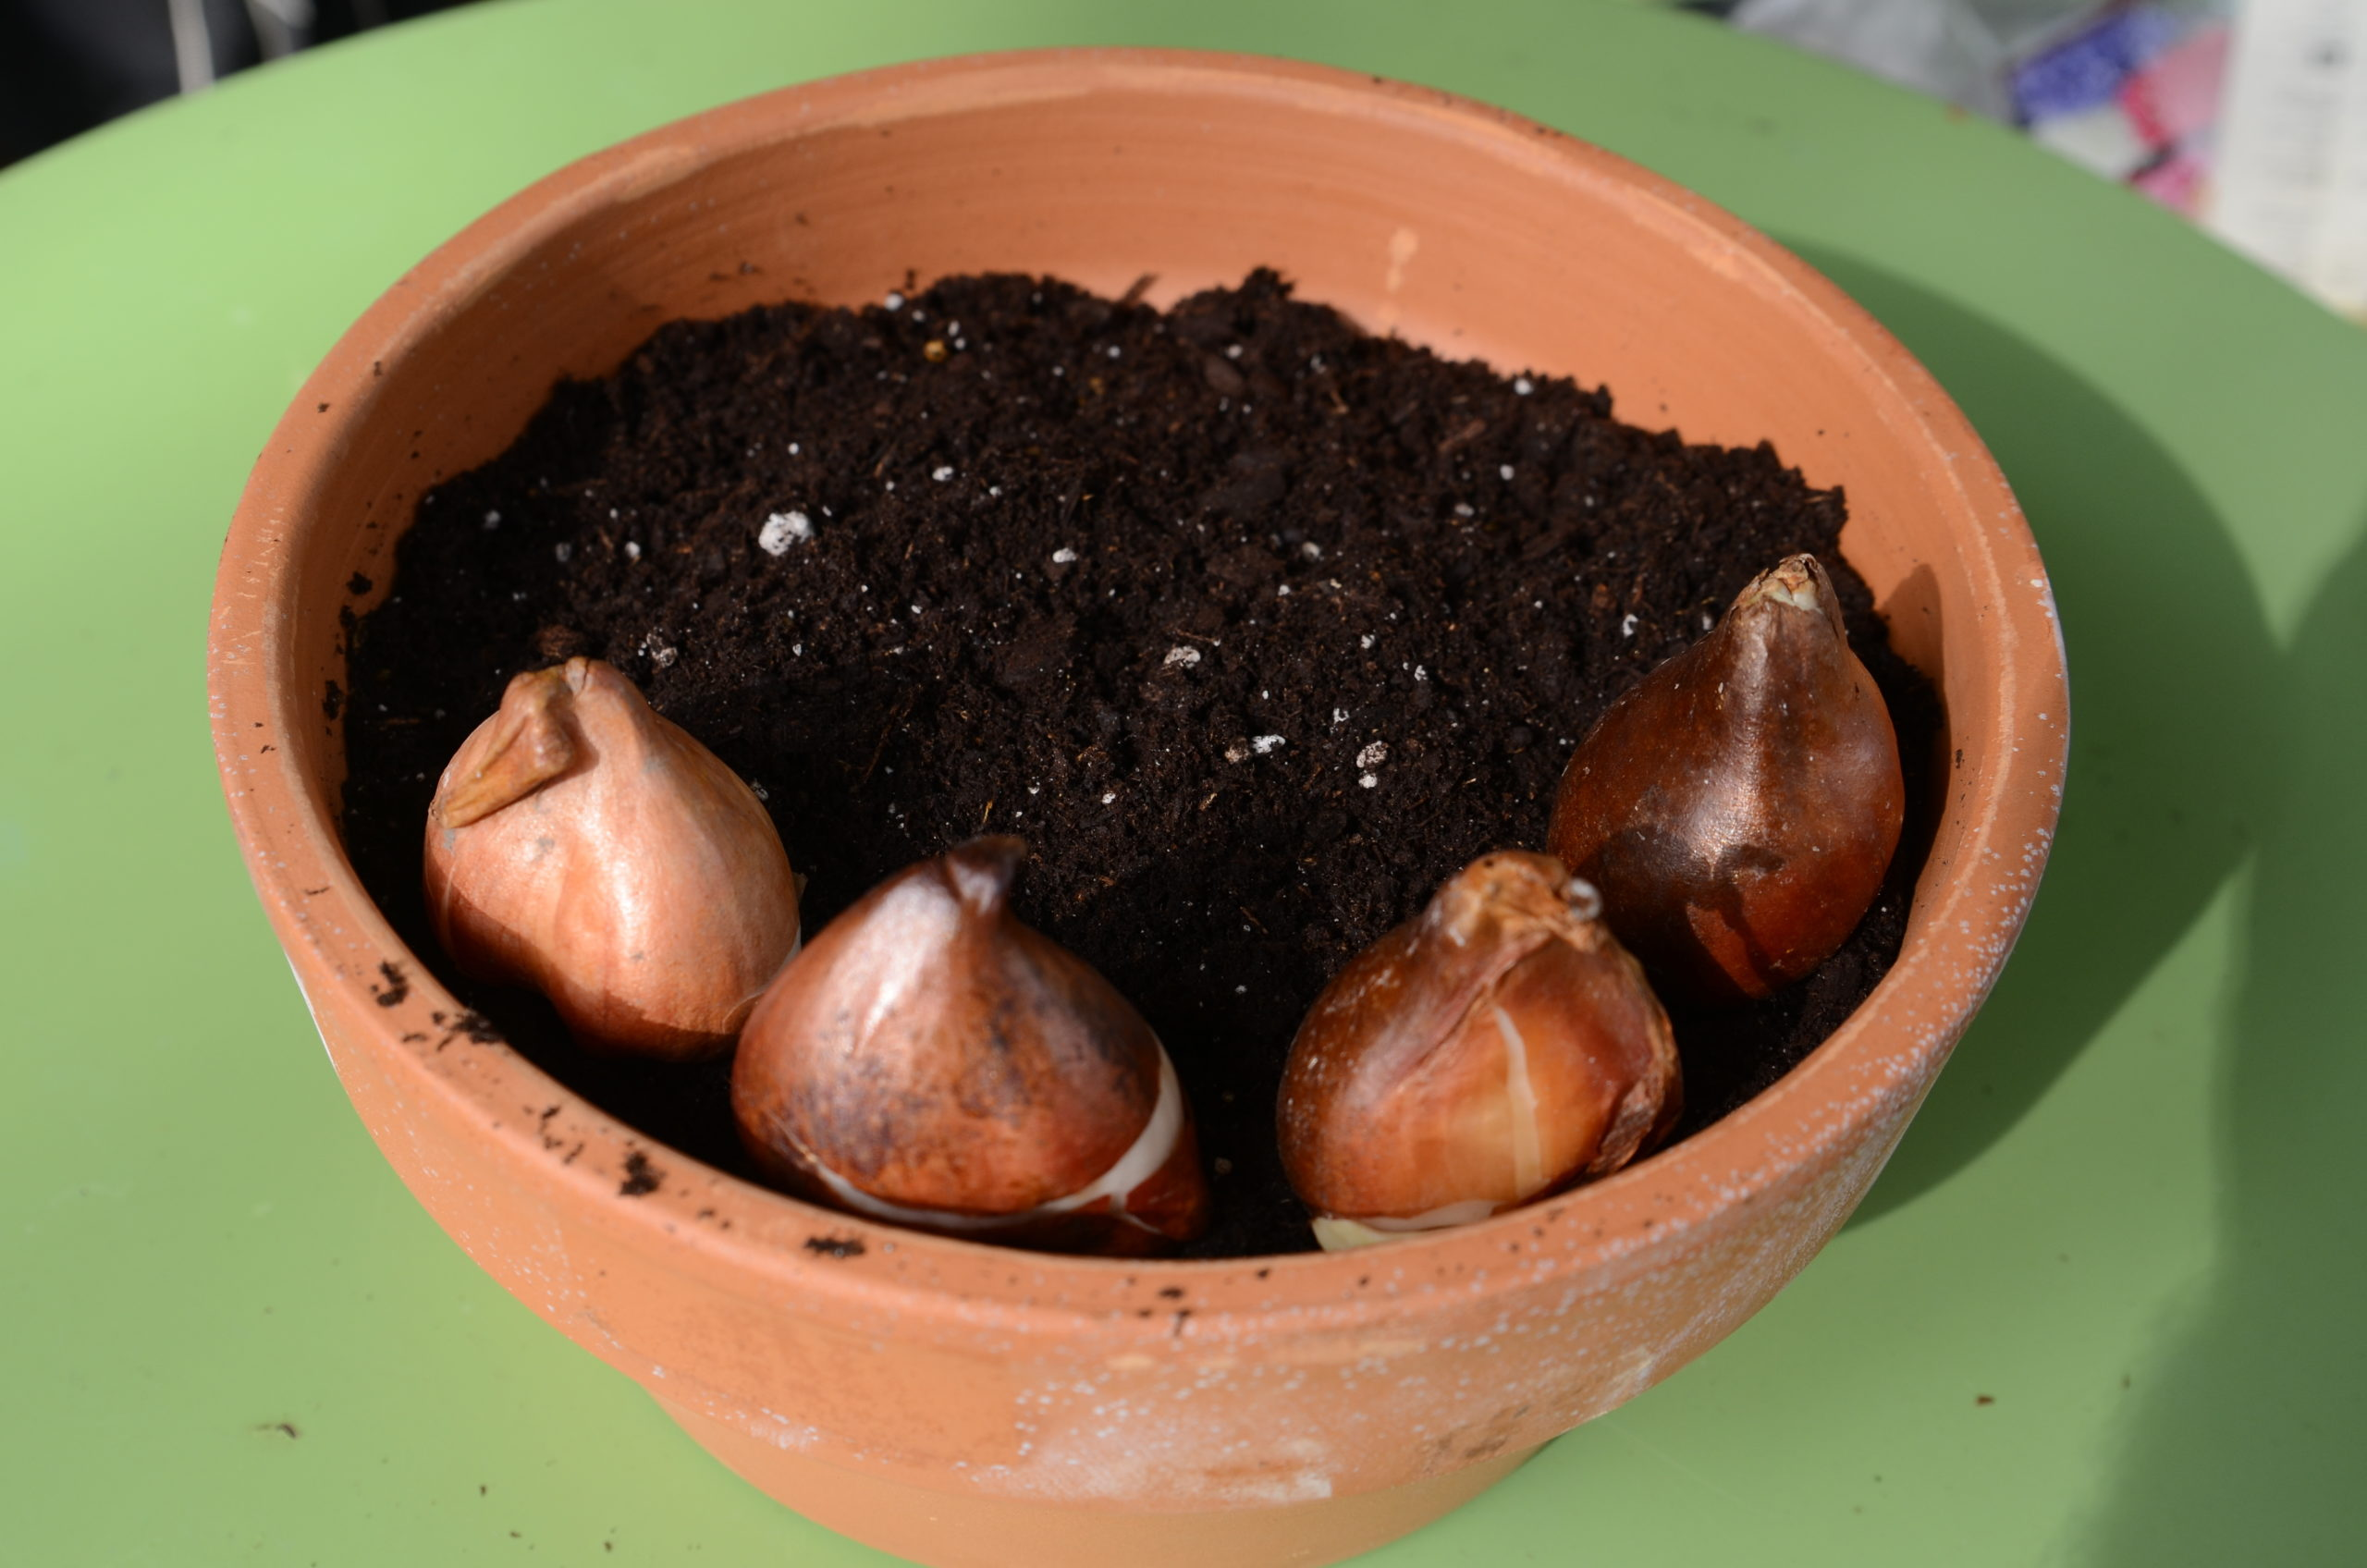 A 10-inch bulb pan (clay) filled with lightly moistened Pro-Mix. The initial four tulip bulbs (flat side facing out) are placed for spacing. When completed, the pot will hold 11 bulbs.